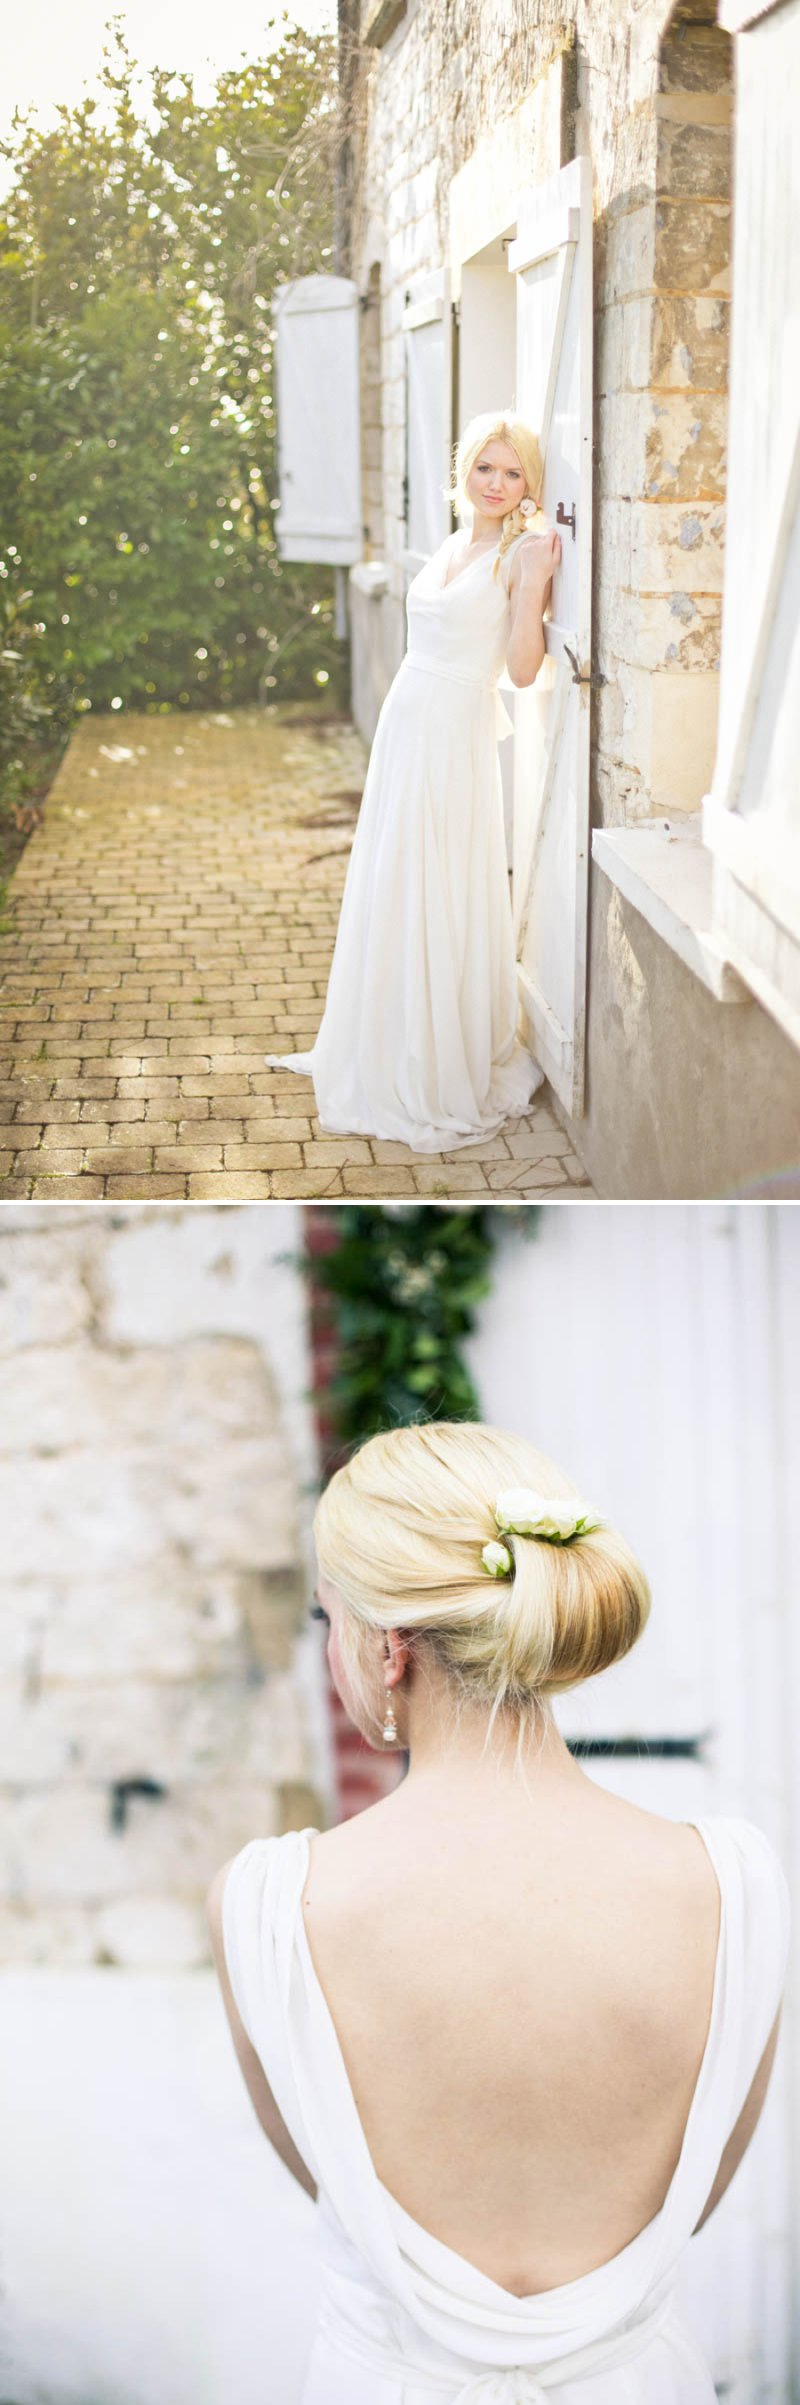 A Romantic And Whimsical Bridal Inspiration Shoot With Johanna Hehir Gowns And Victoria Millesime Accessories With Stationery By Artcadia And Flowers By Boutique Blooms Images From Anneli Marinovich 8